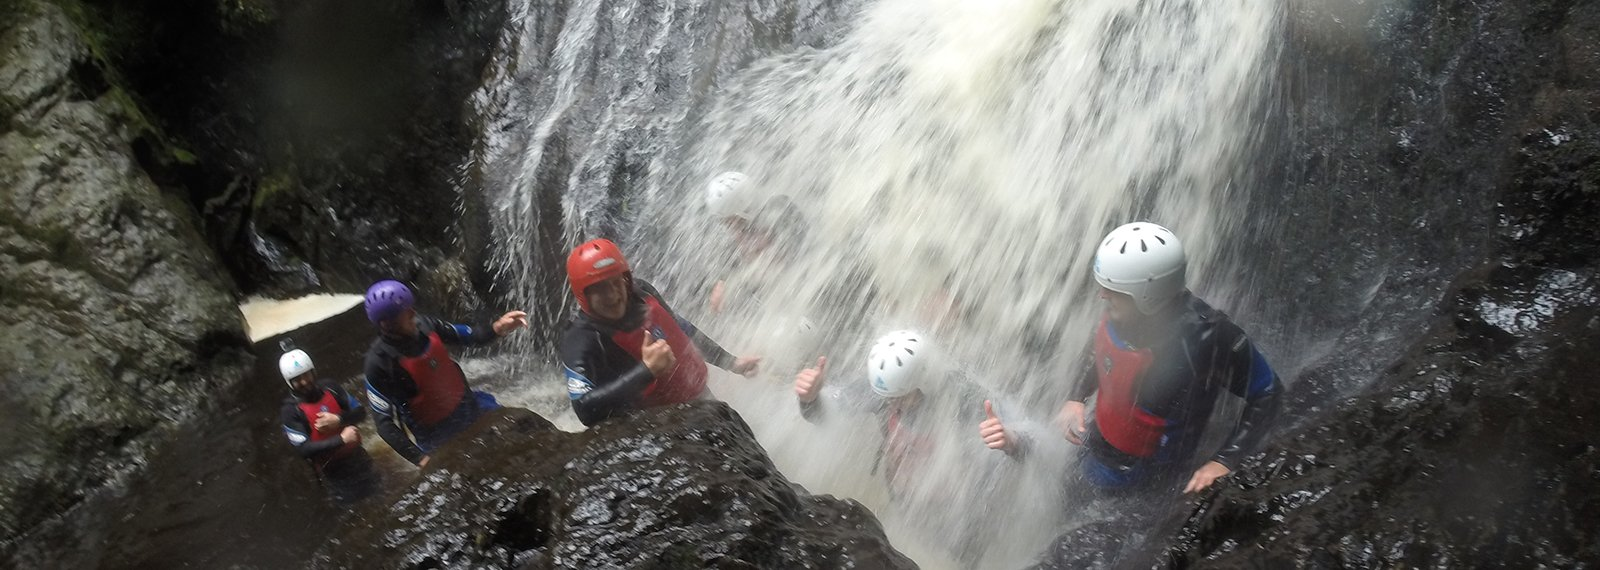 canyoning snowdonia north wales